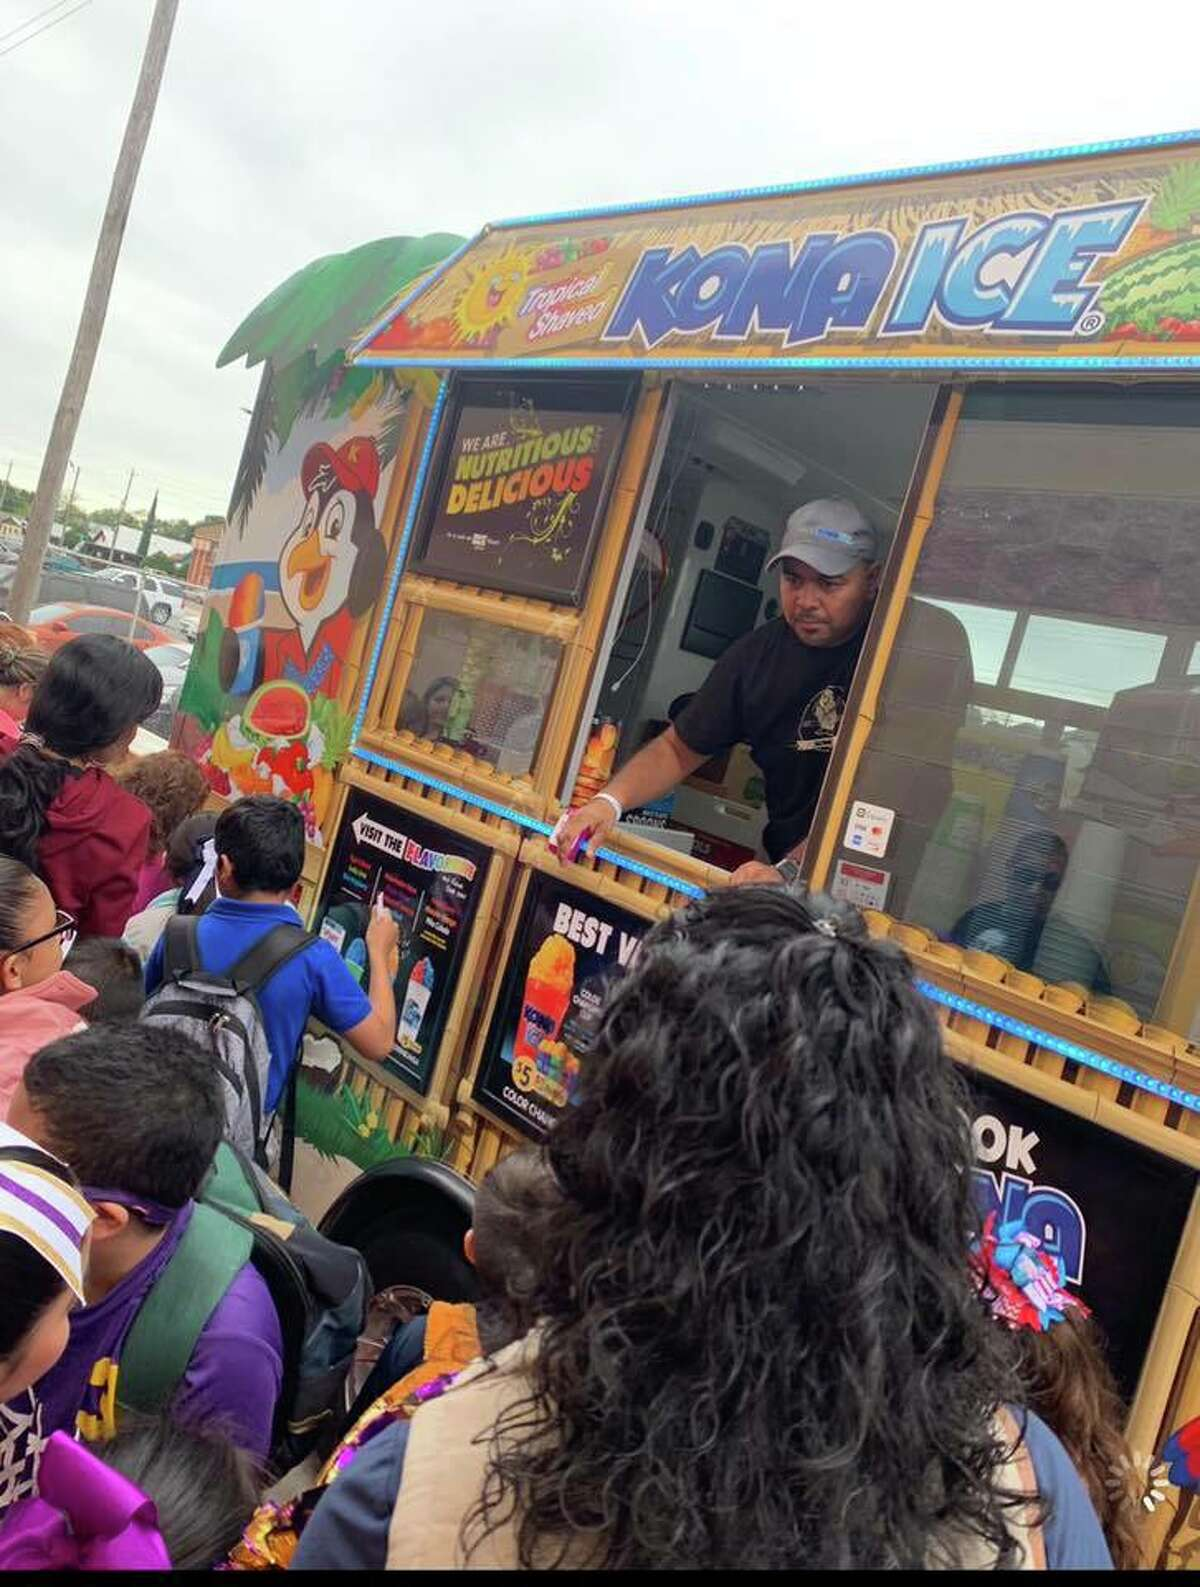 In this photo, Rene Gonzalez is shown. He is one of two local entrepreneurs who own a Kona Ice, a mobile franchise that gives back to the community through fundraising opportunities.